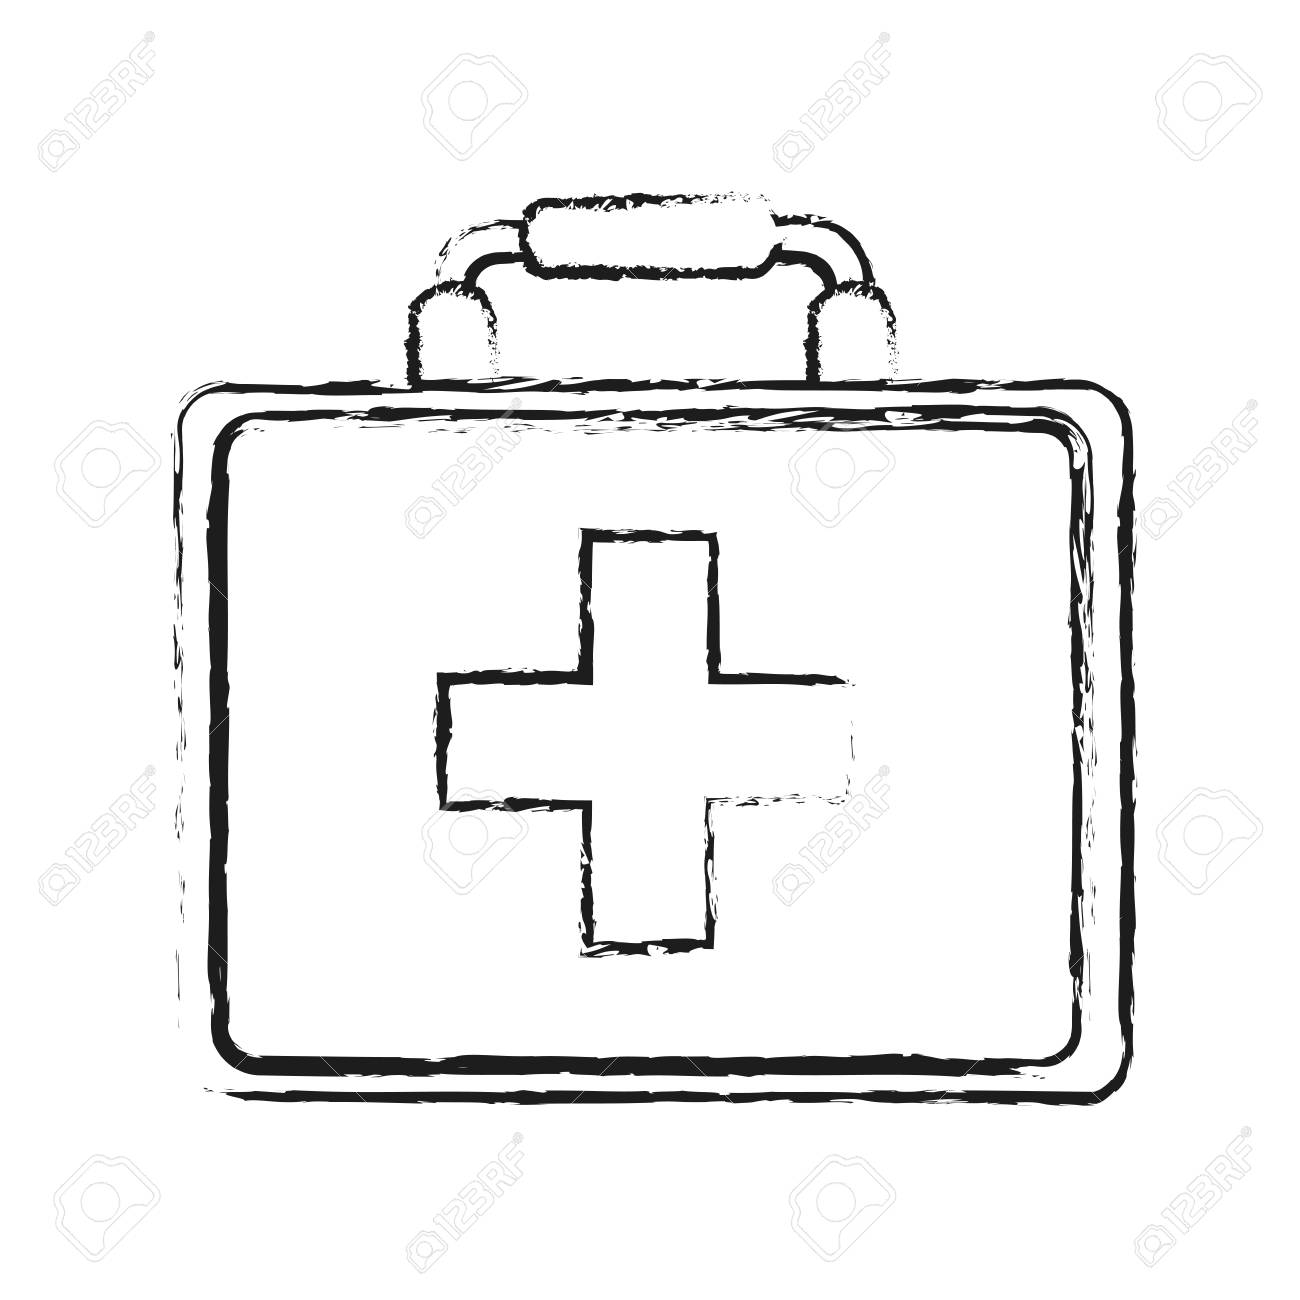 Blurred Silhouette Image Cartoon First Aid Kit With Symbol Cross